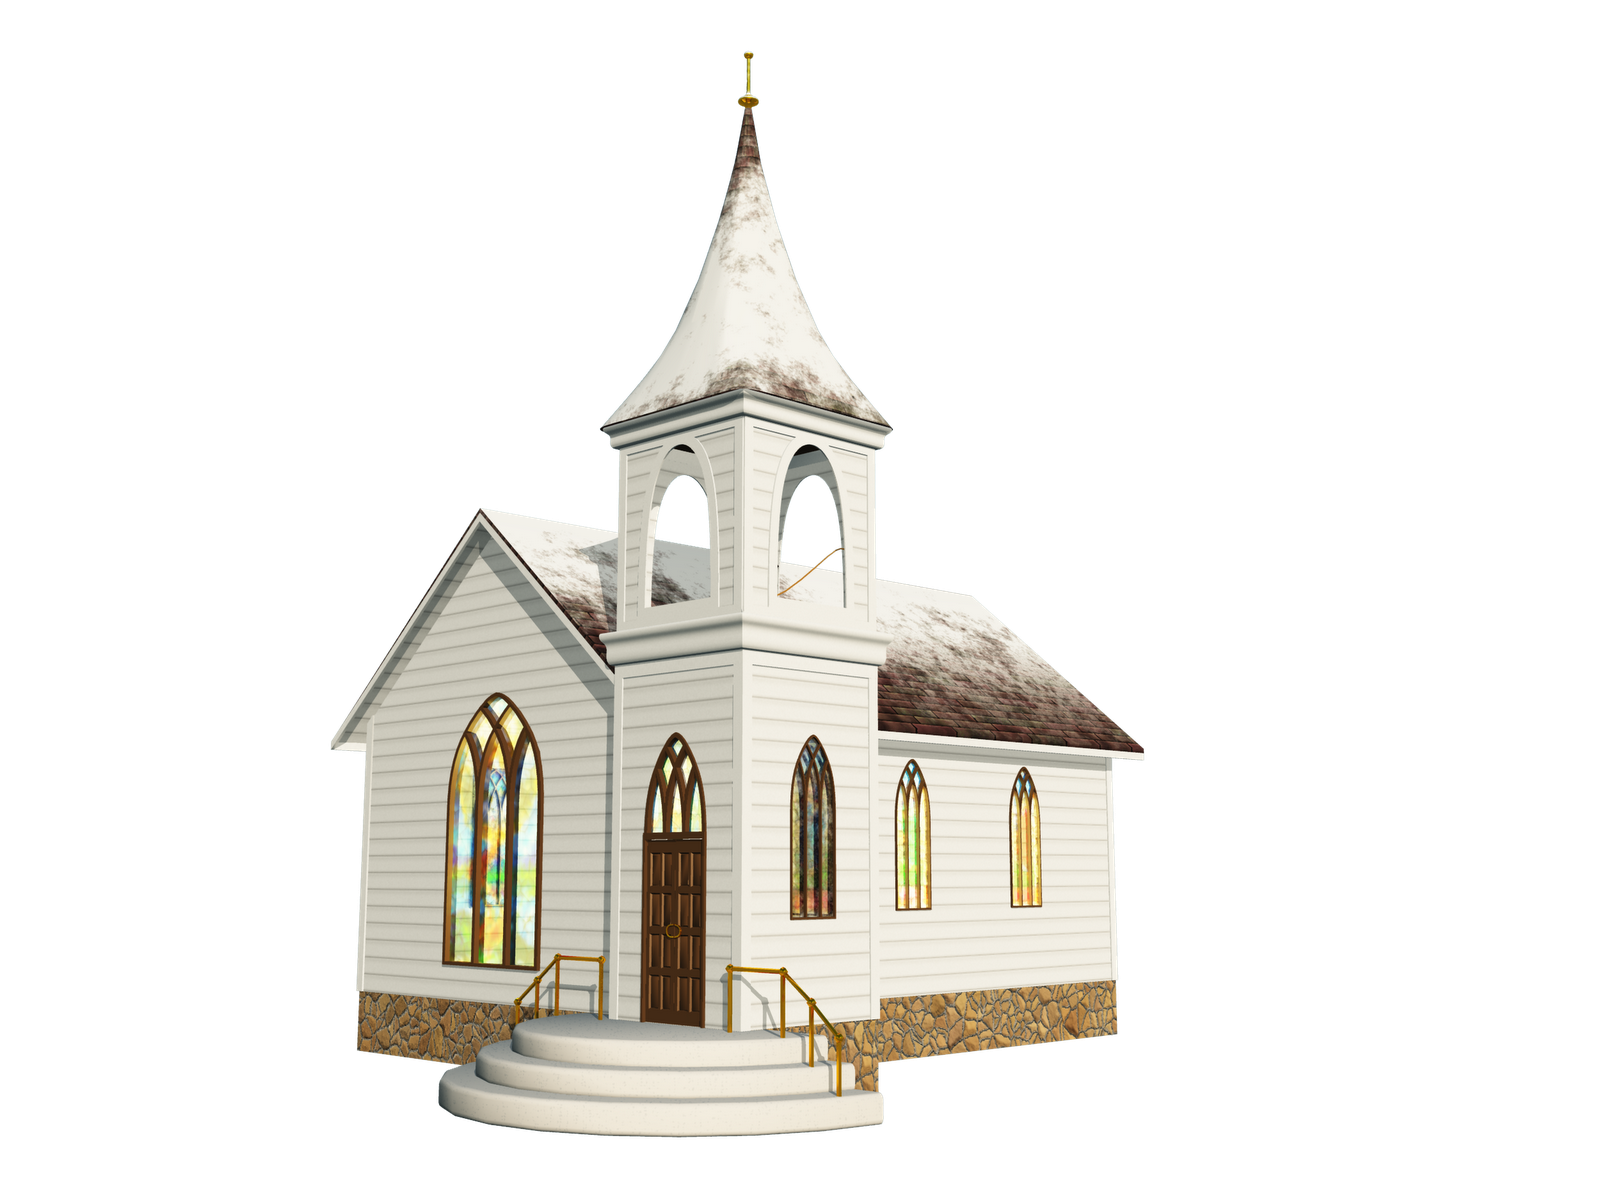 Online House Design 3d Church Hd Png Transparent Church Hd Png Images Pluspng